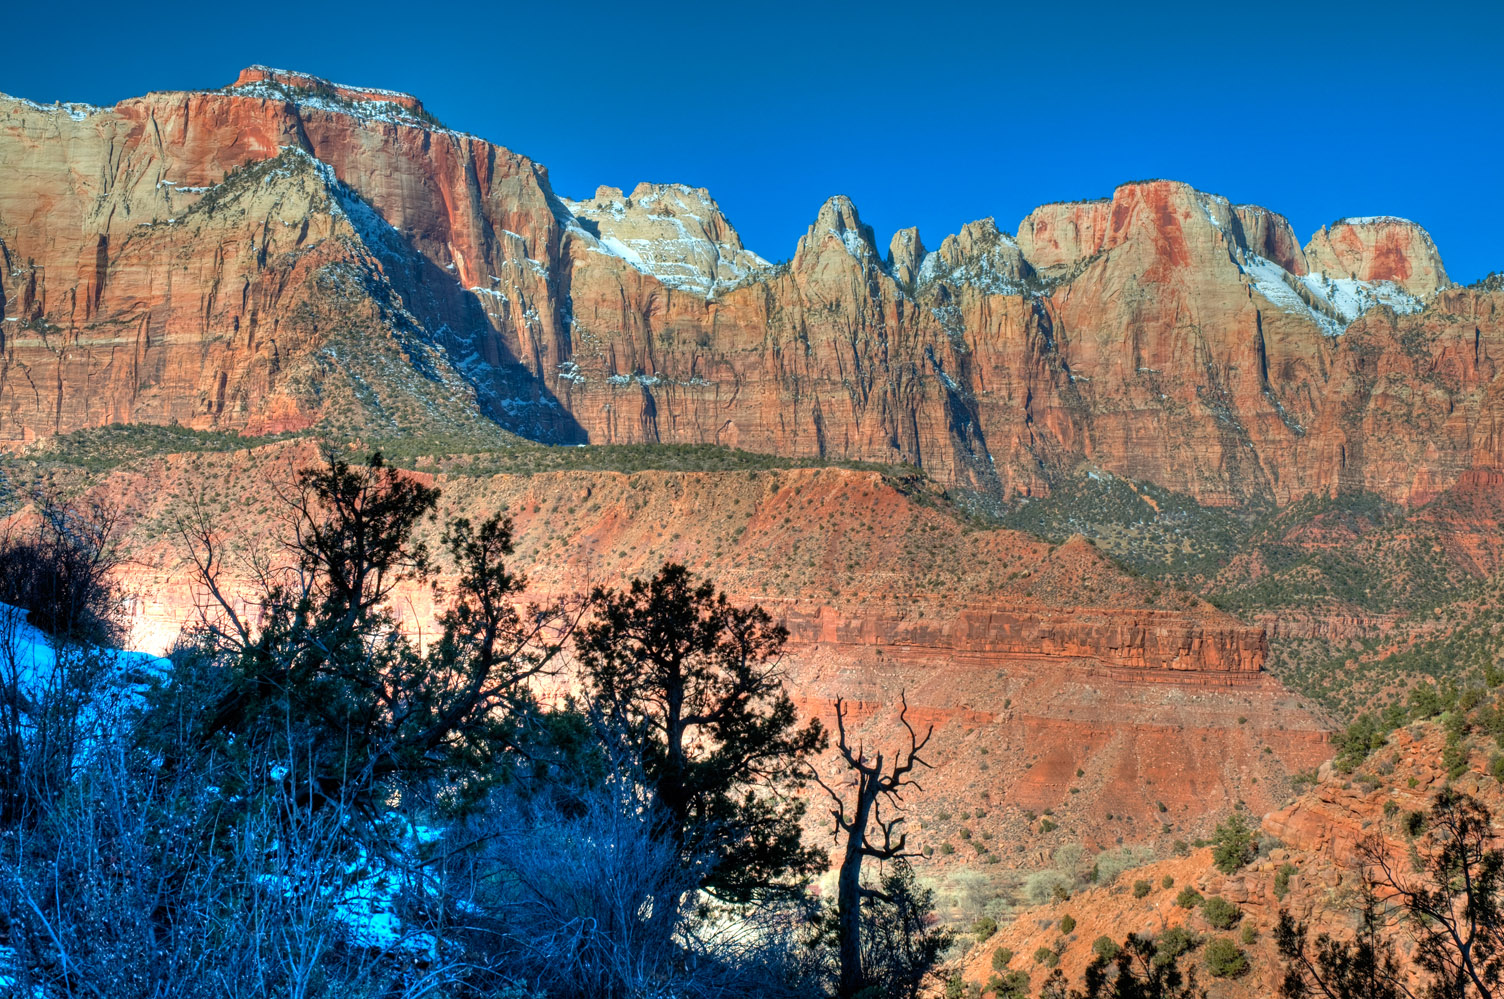 Morning sun, Zion National Park, Utah